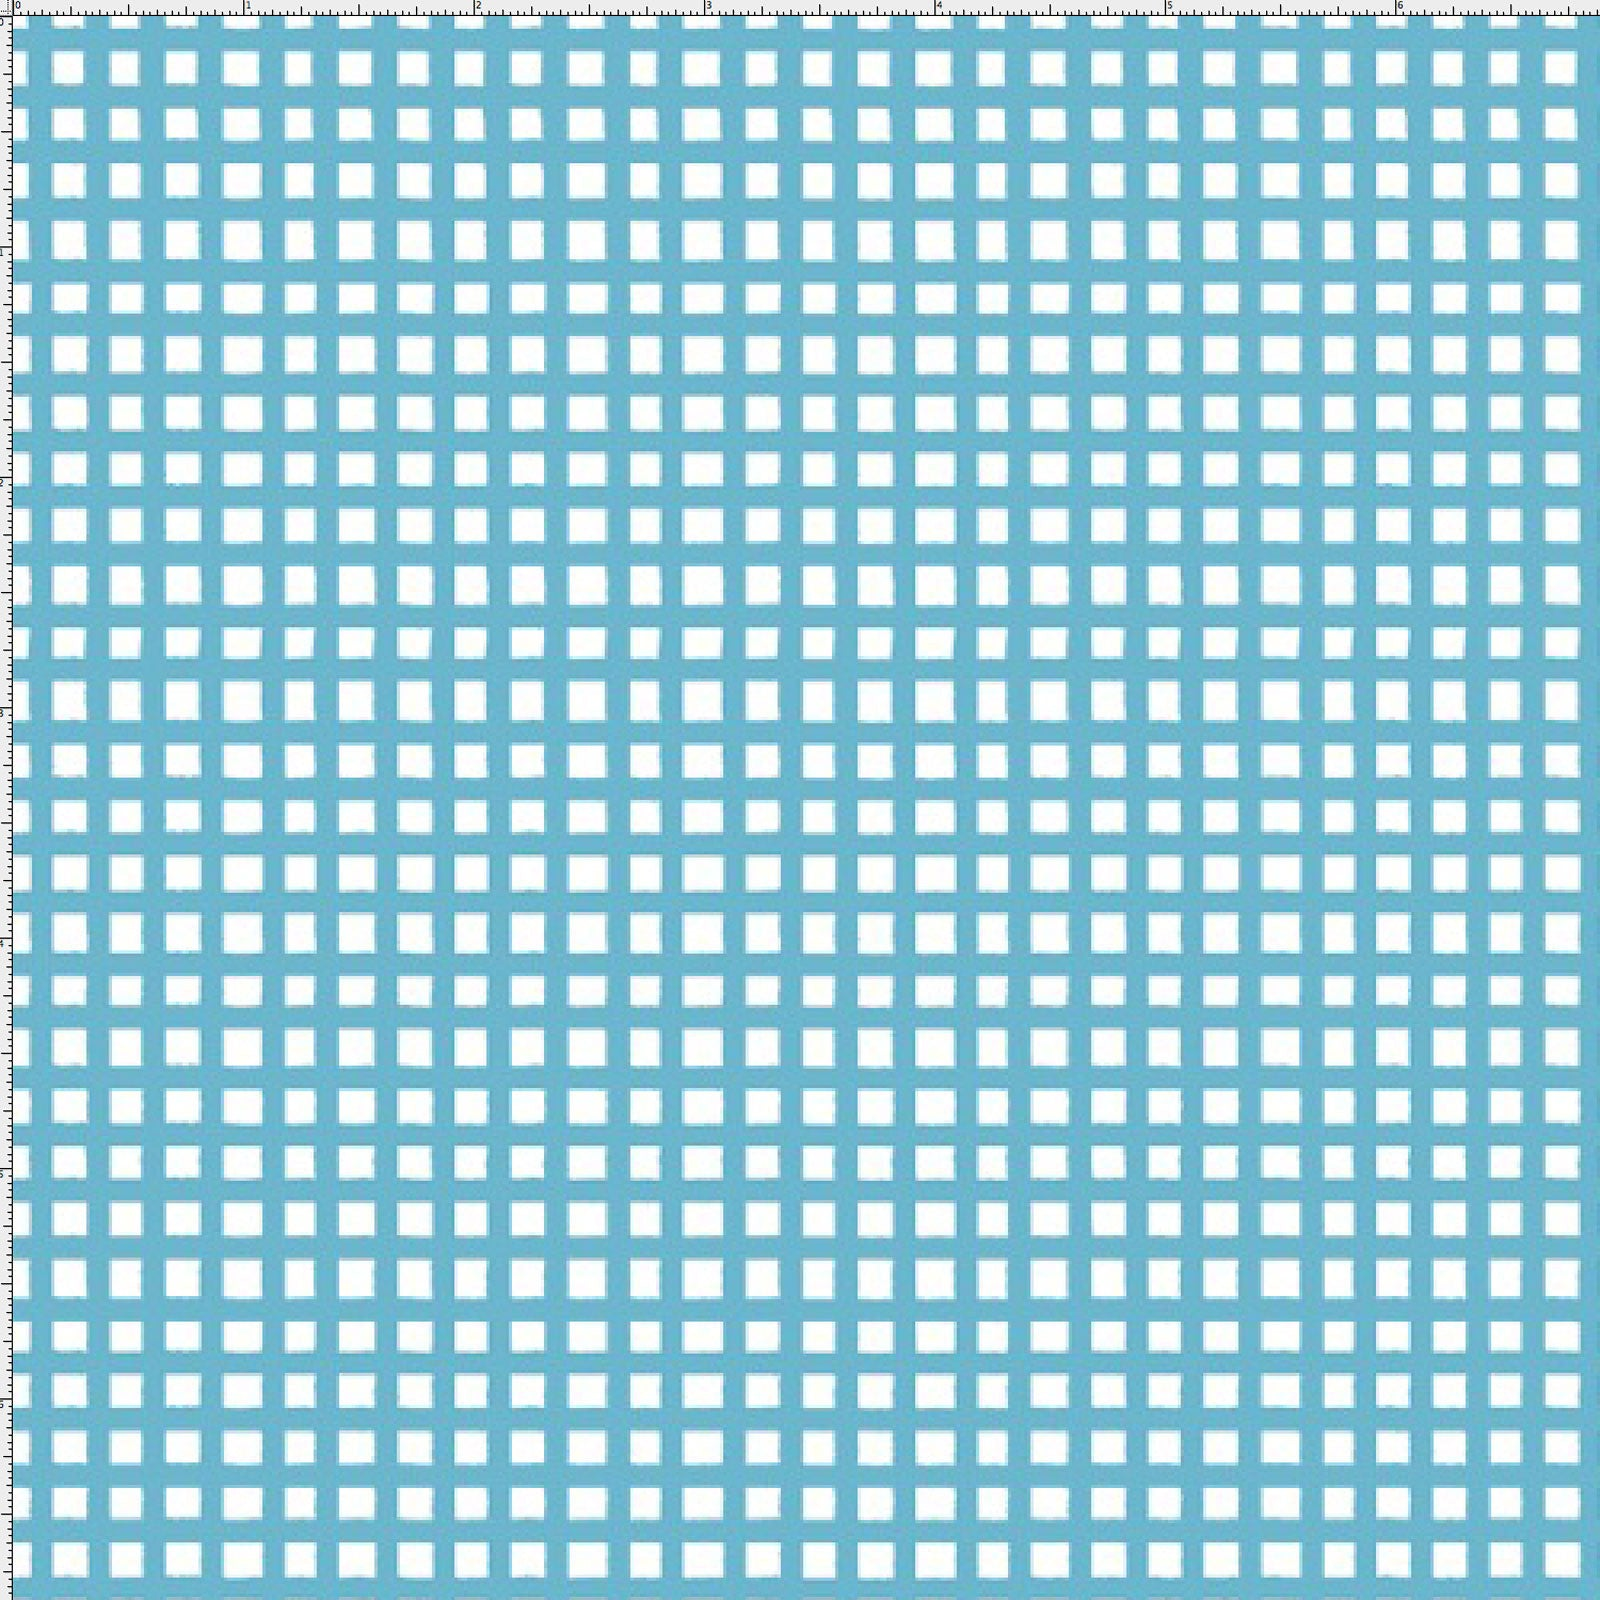 Chipper Check Turquoise Fabric Yard